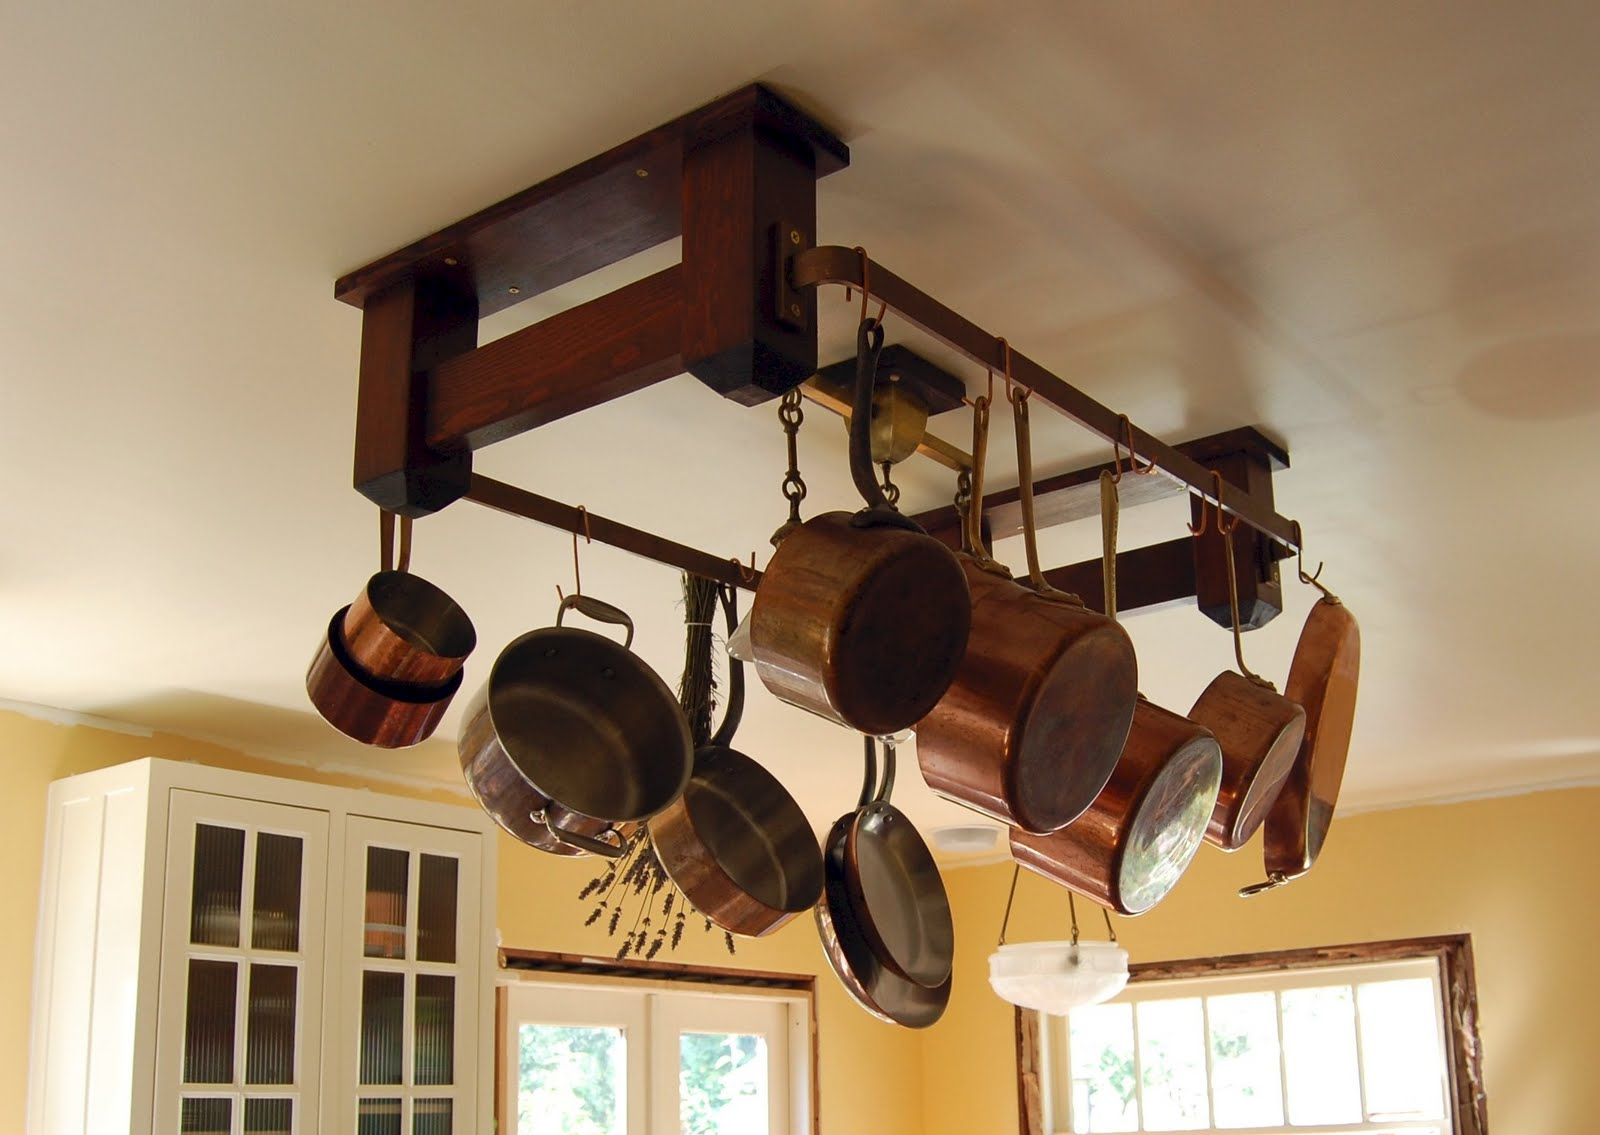 We Recently Completed And Installed A New Kitchen Pot Rack Spent Good Deal Of Time Searching The Web Looking At Other Homemade Custom Built